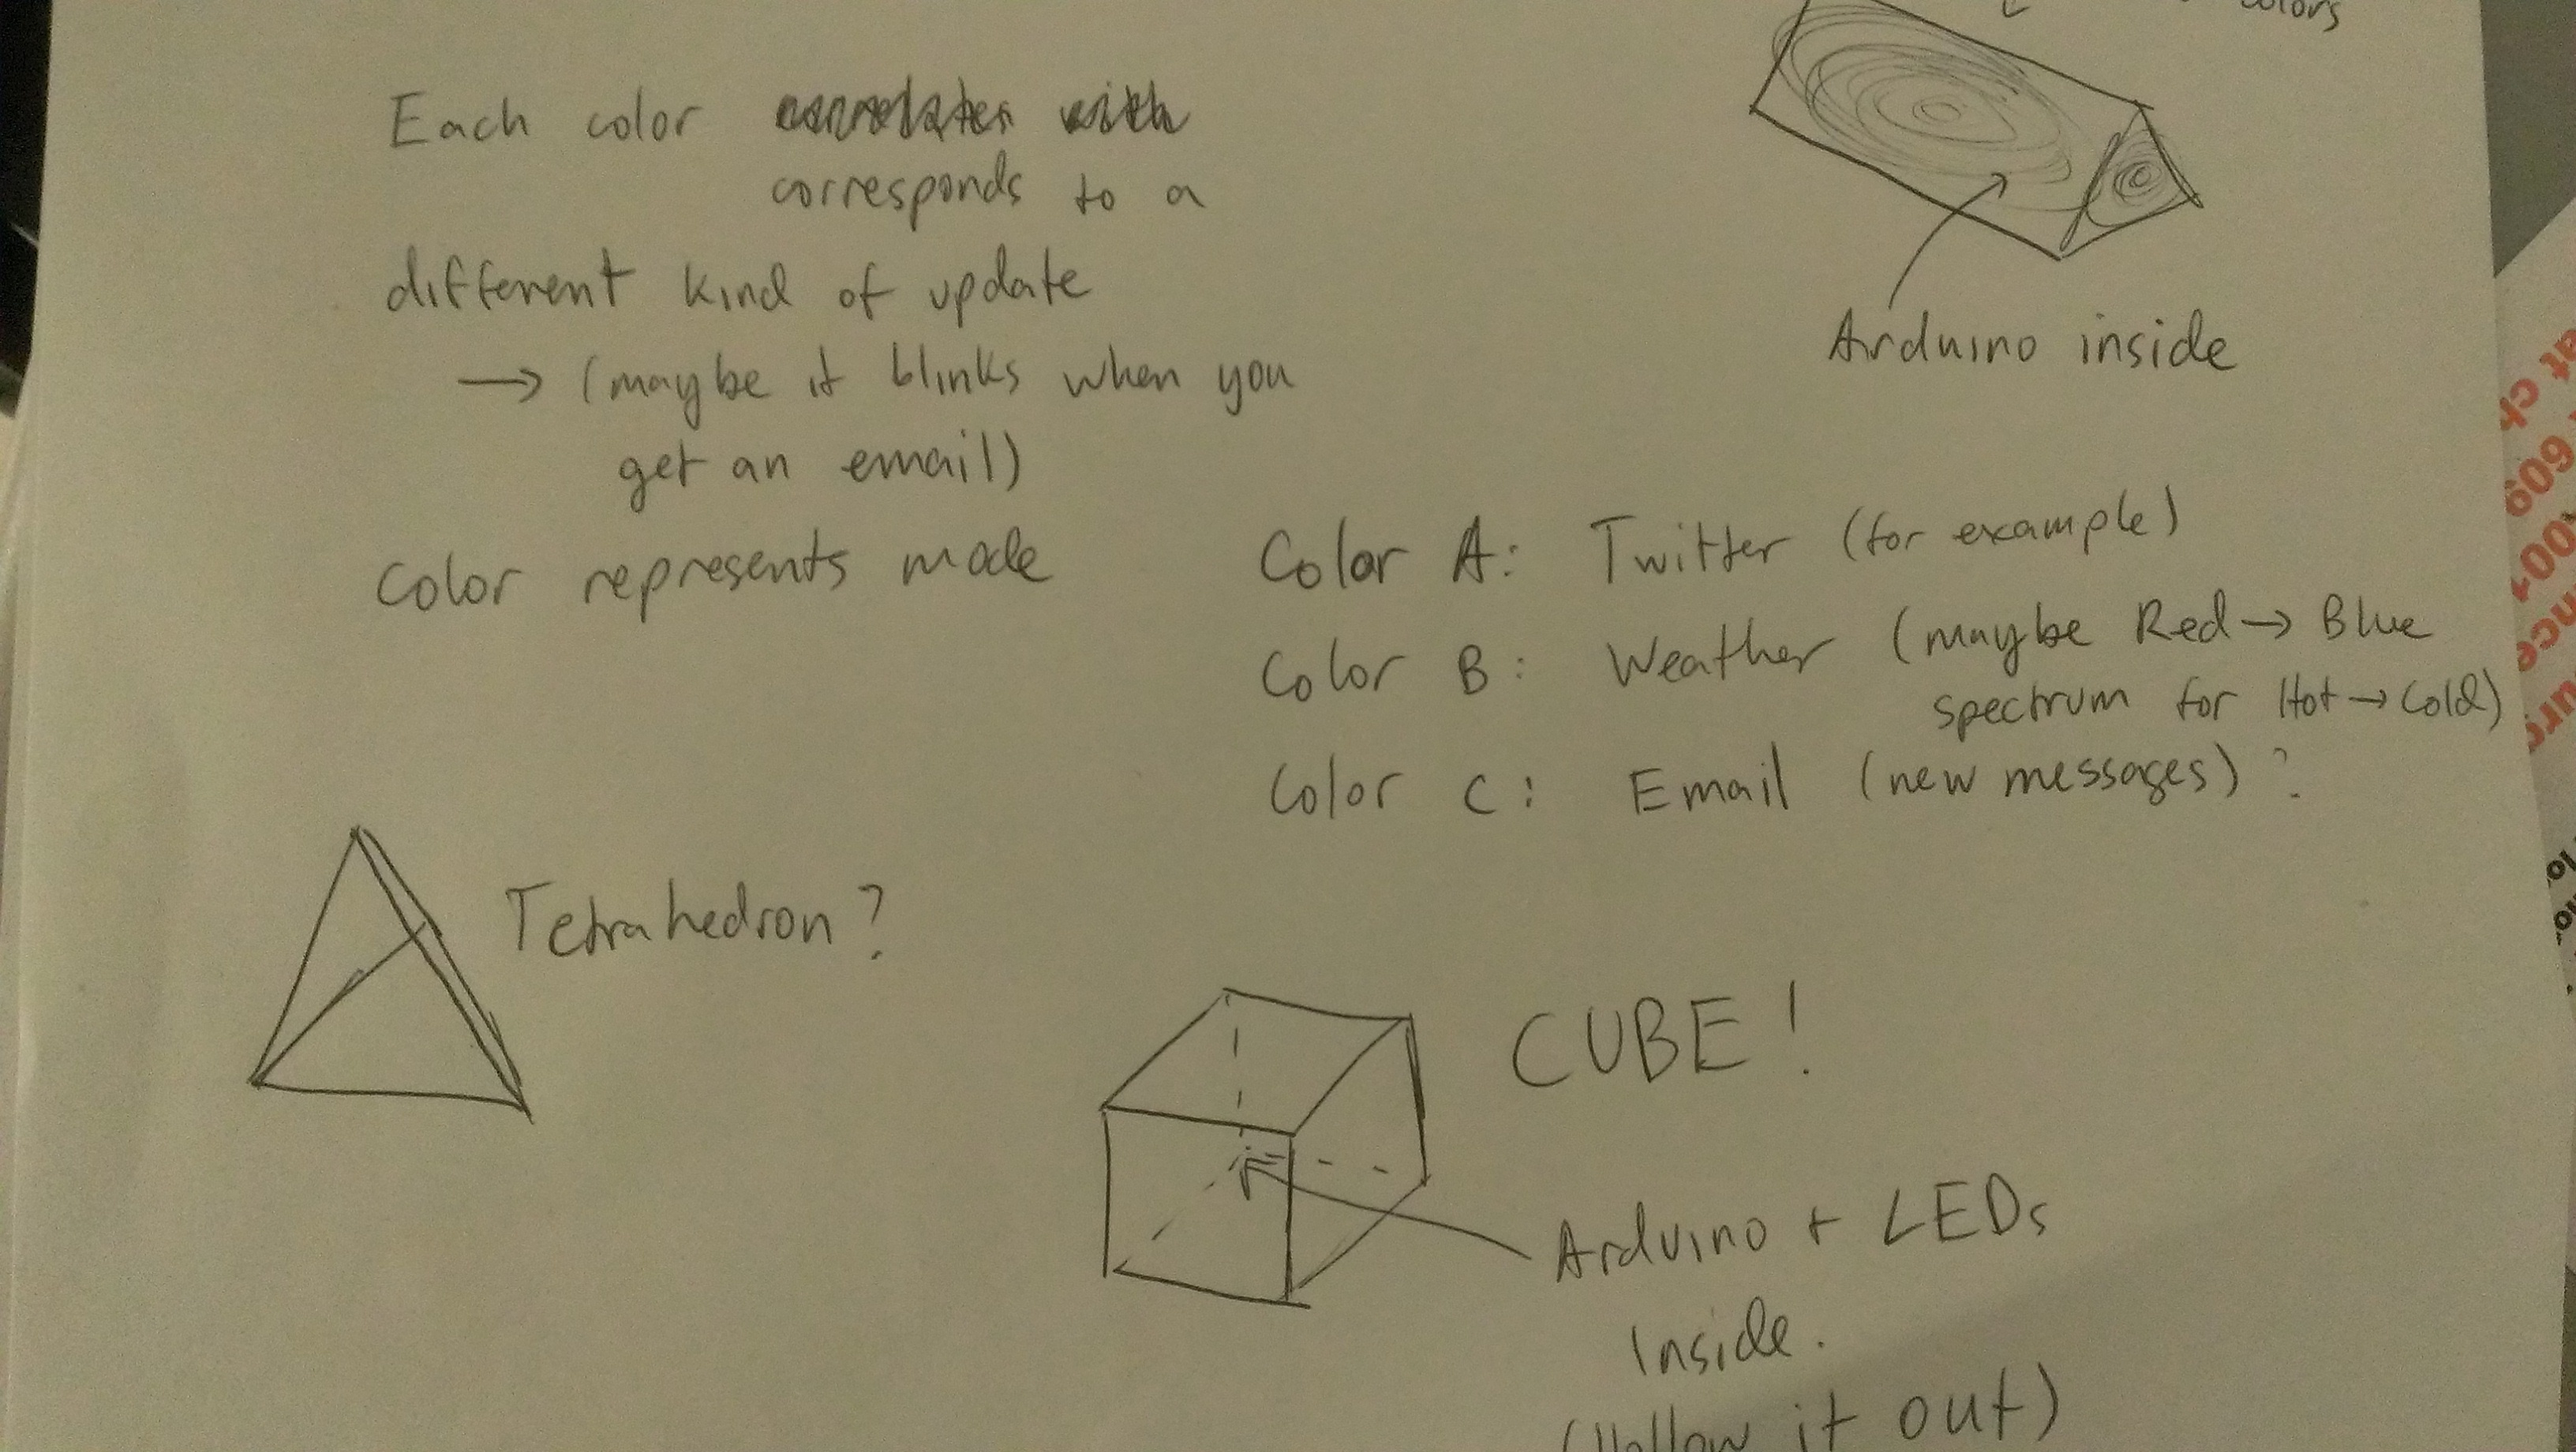 Tetrahedron, Prism, some ideas for functionality